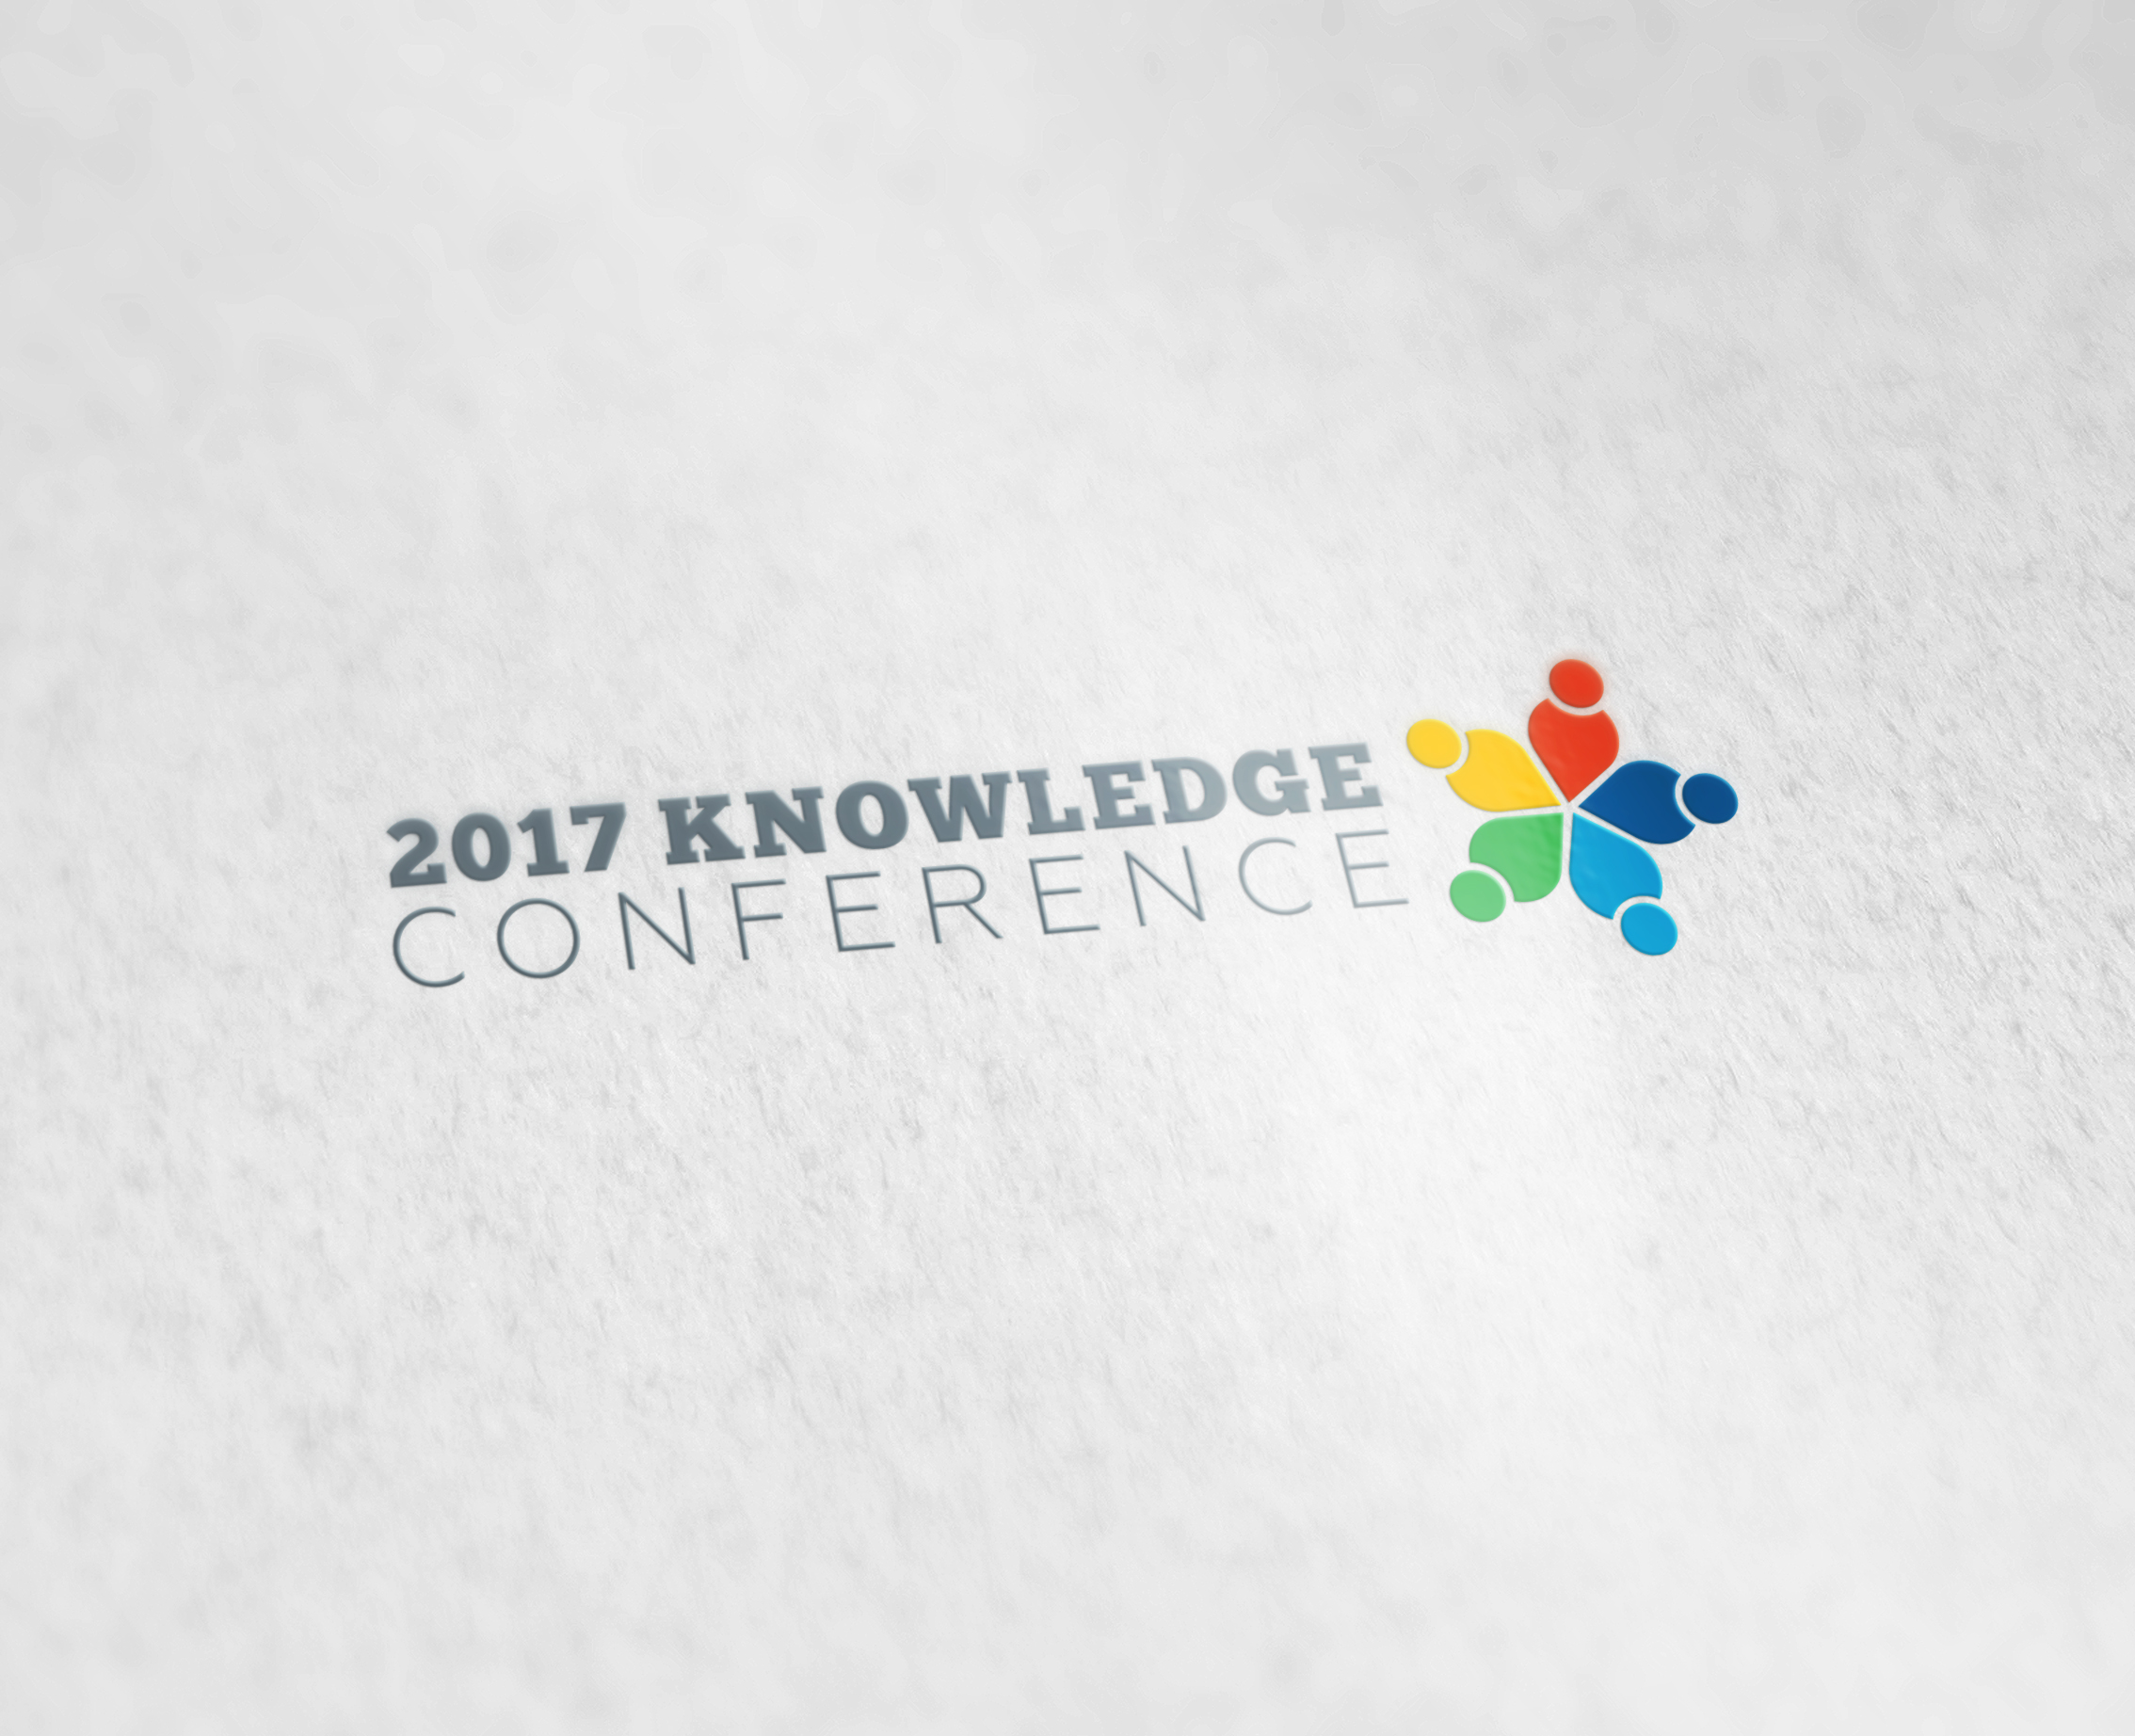 2017 Knowledge Conference logo